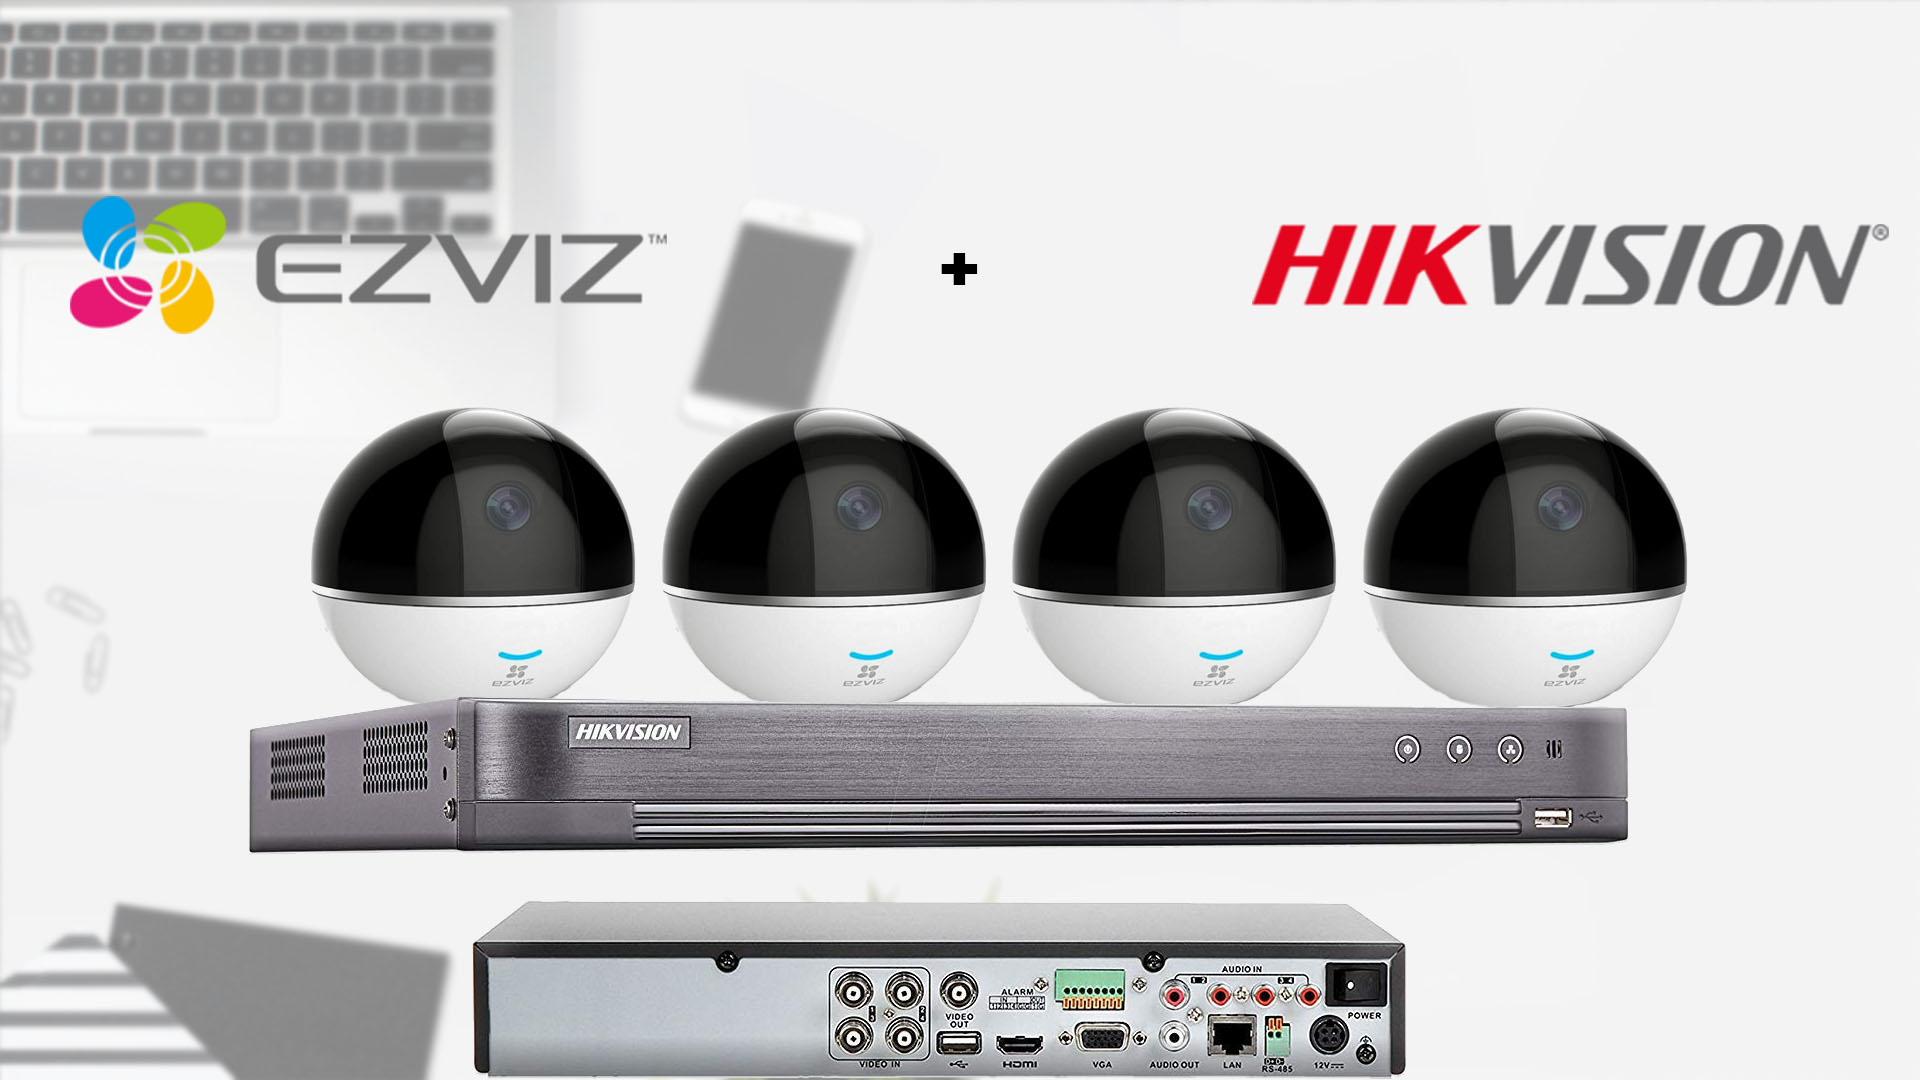 hik+ezviz wireless indoor